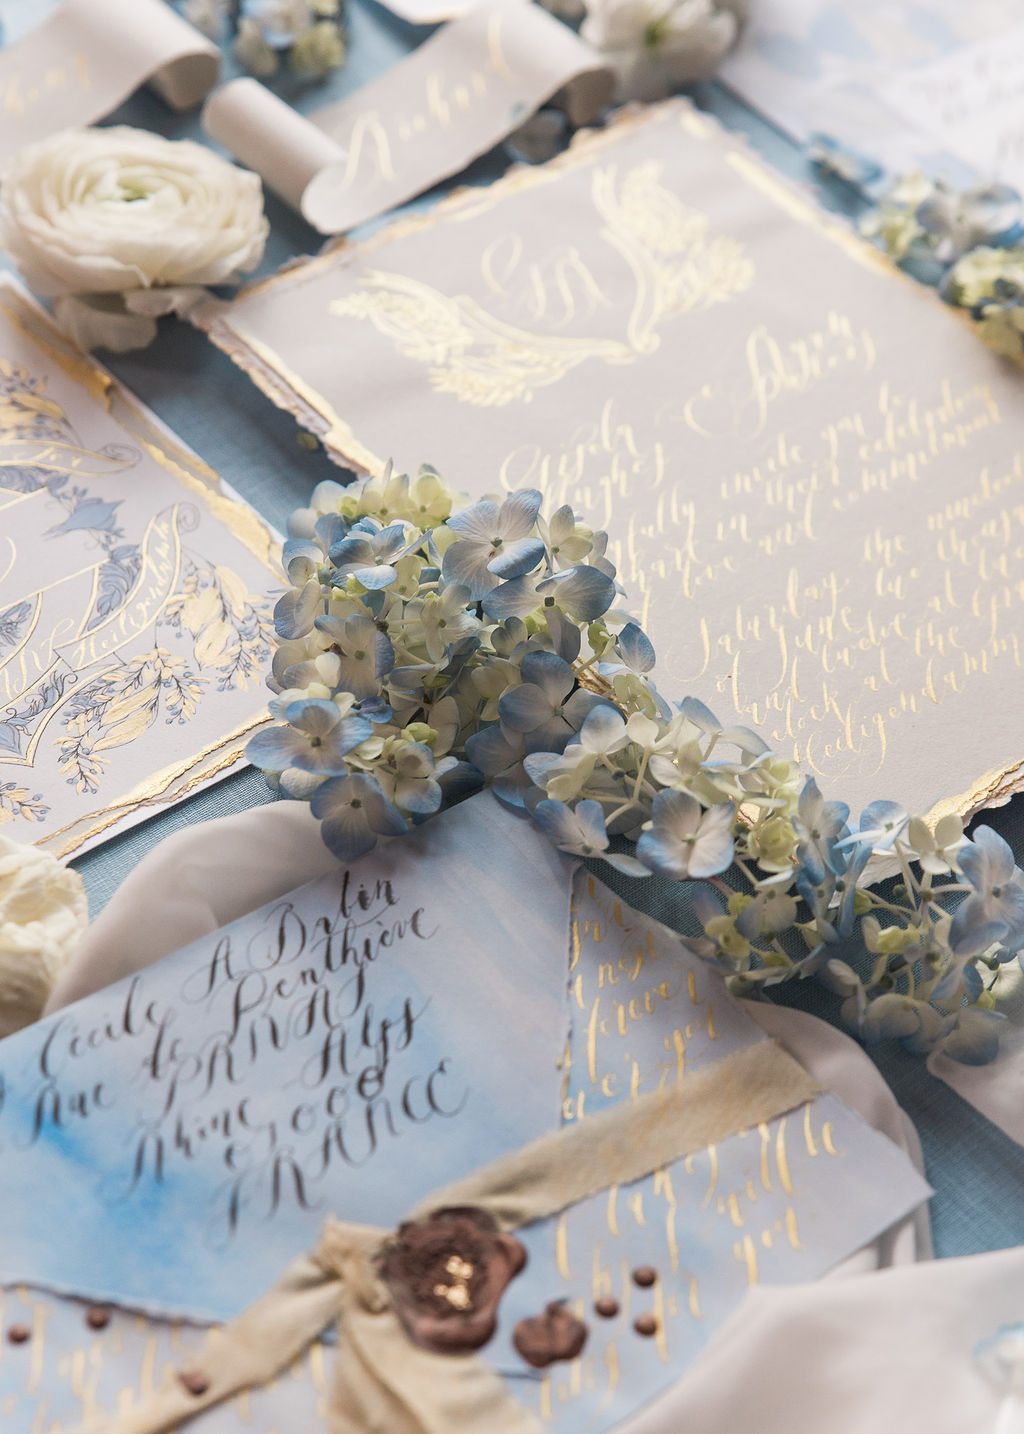 Luxury wedding stationery with a French design inspiration, with gentle blues, champagne, white and hints of antique gold for a high end destination wedding in Paris, France